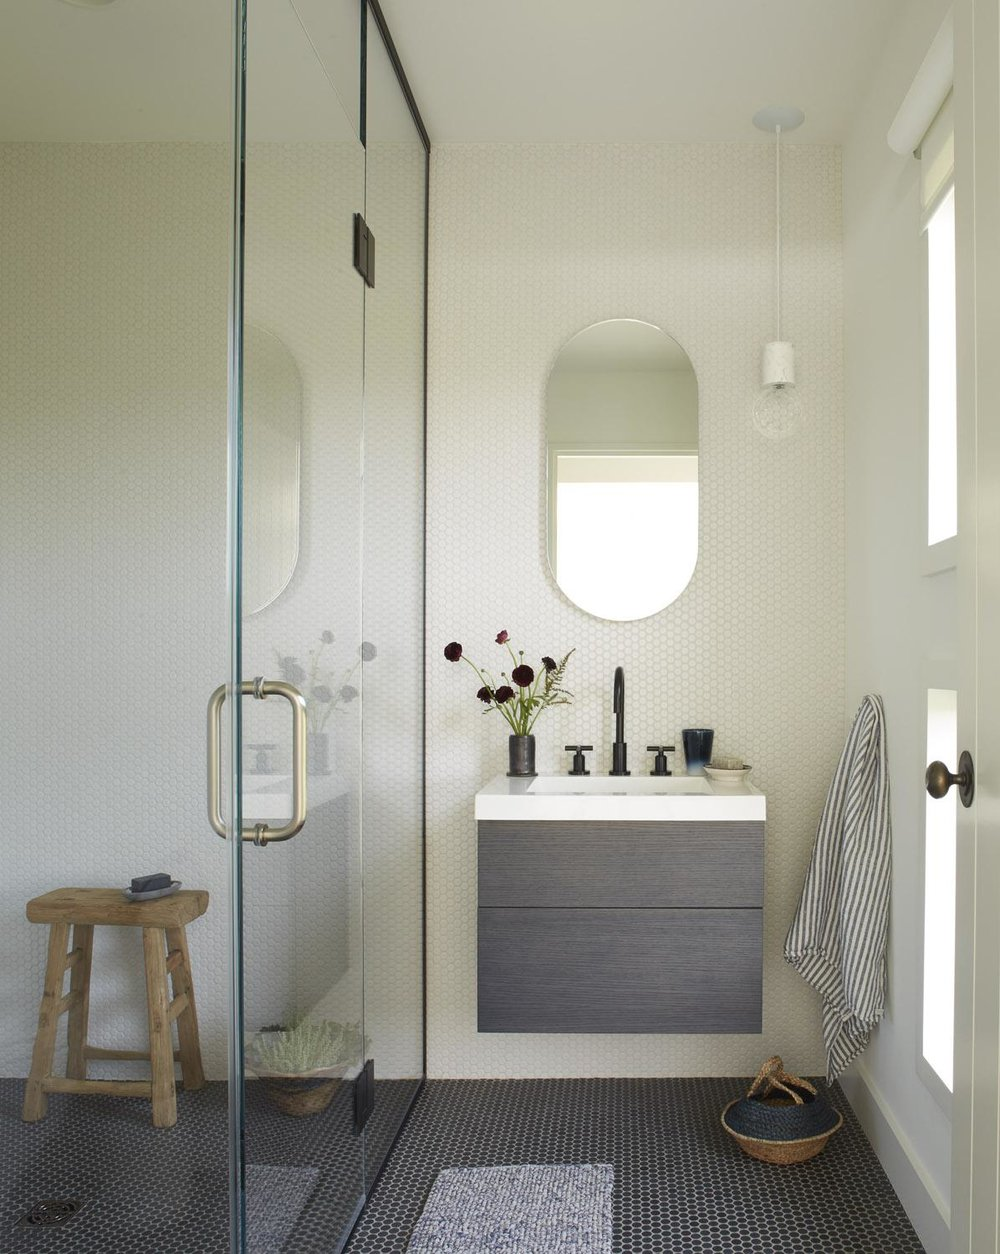 bathroom-mass-cottage-floating-vanity-black-floor.jpg